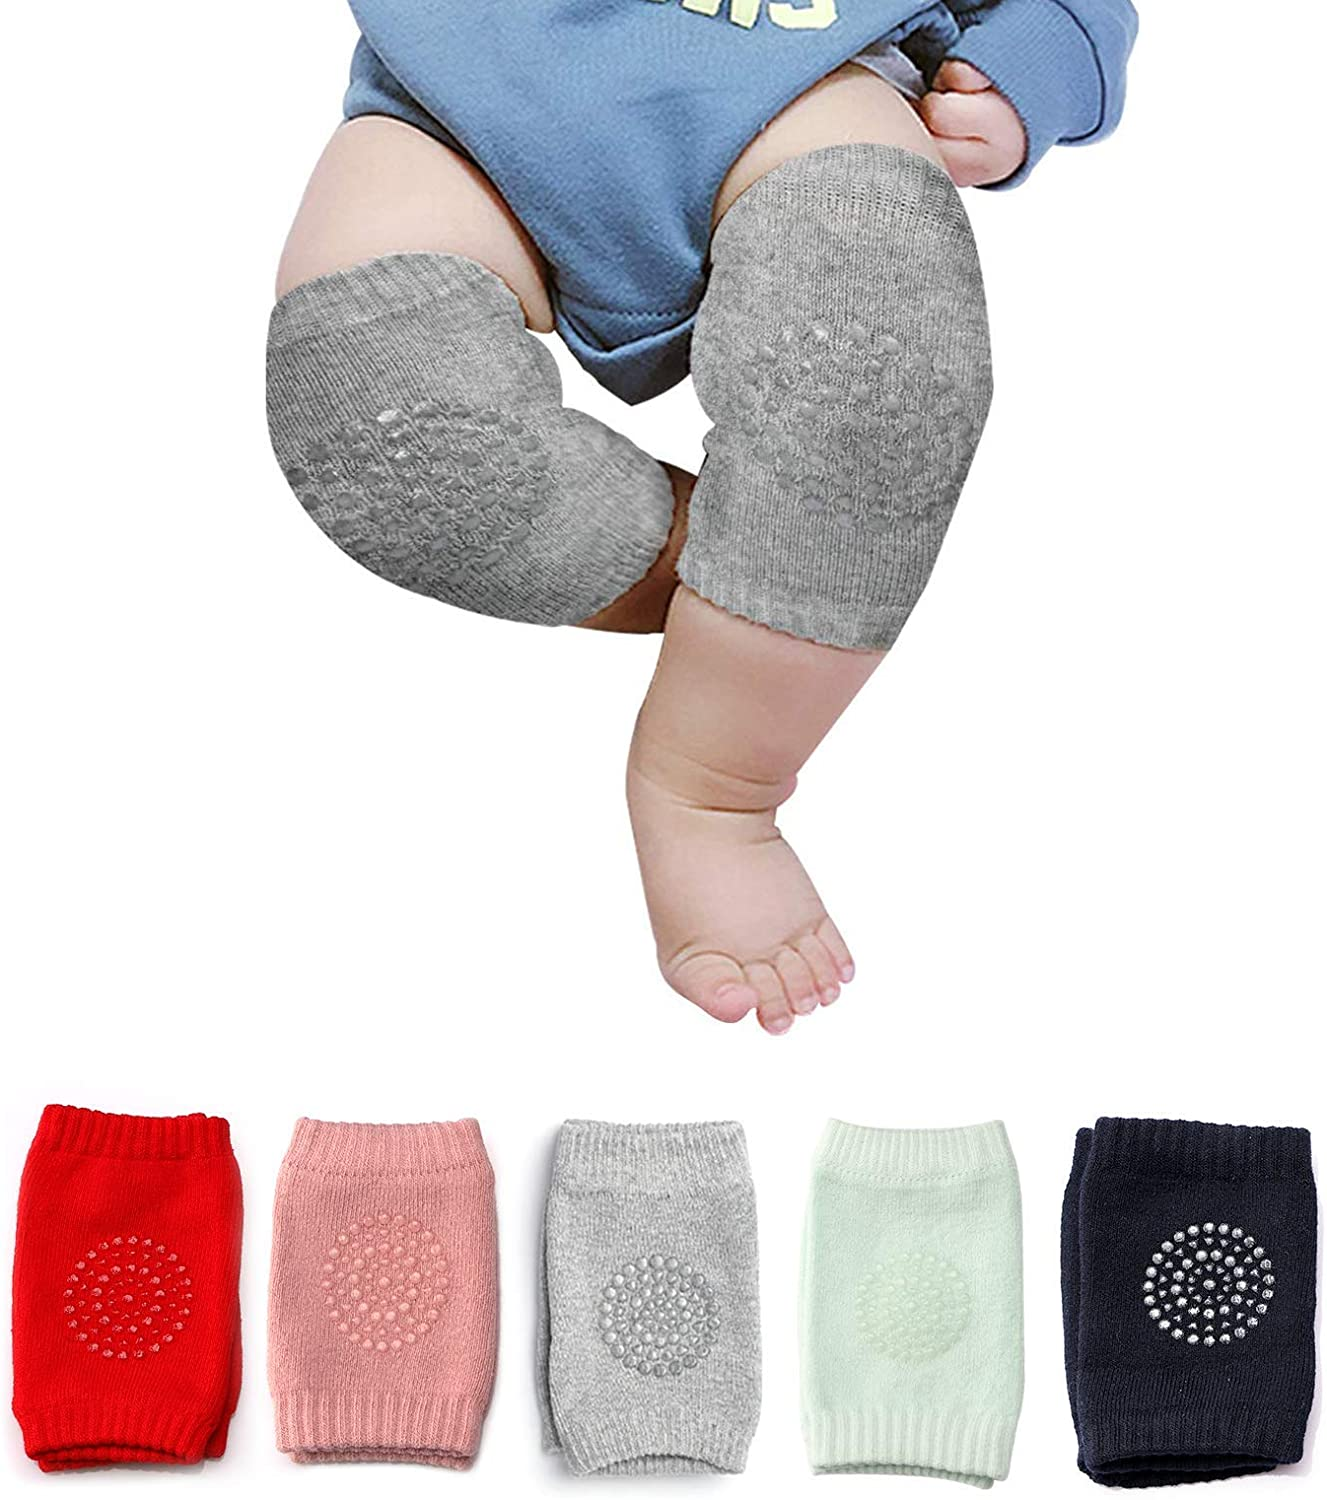 Baby Crawling Pads Anti-Slip Knee Protect Baby's Knee for Crawling